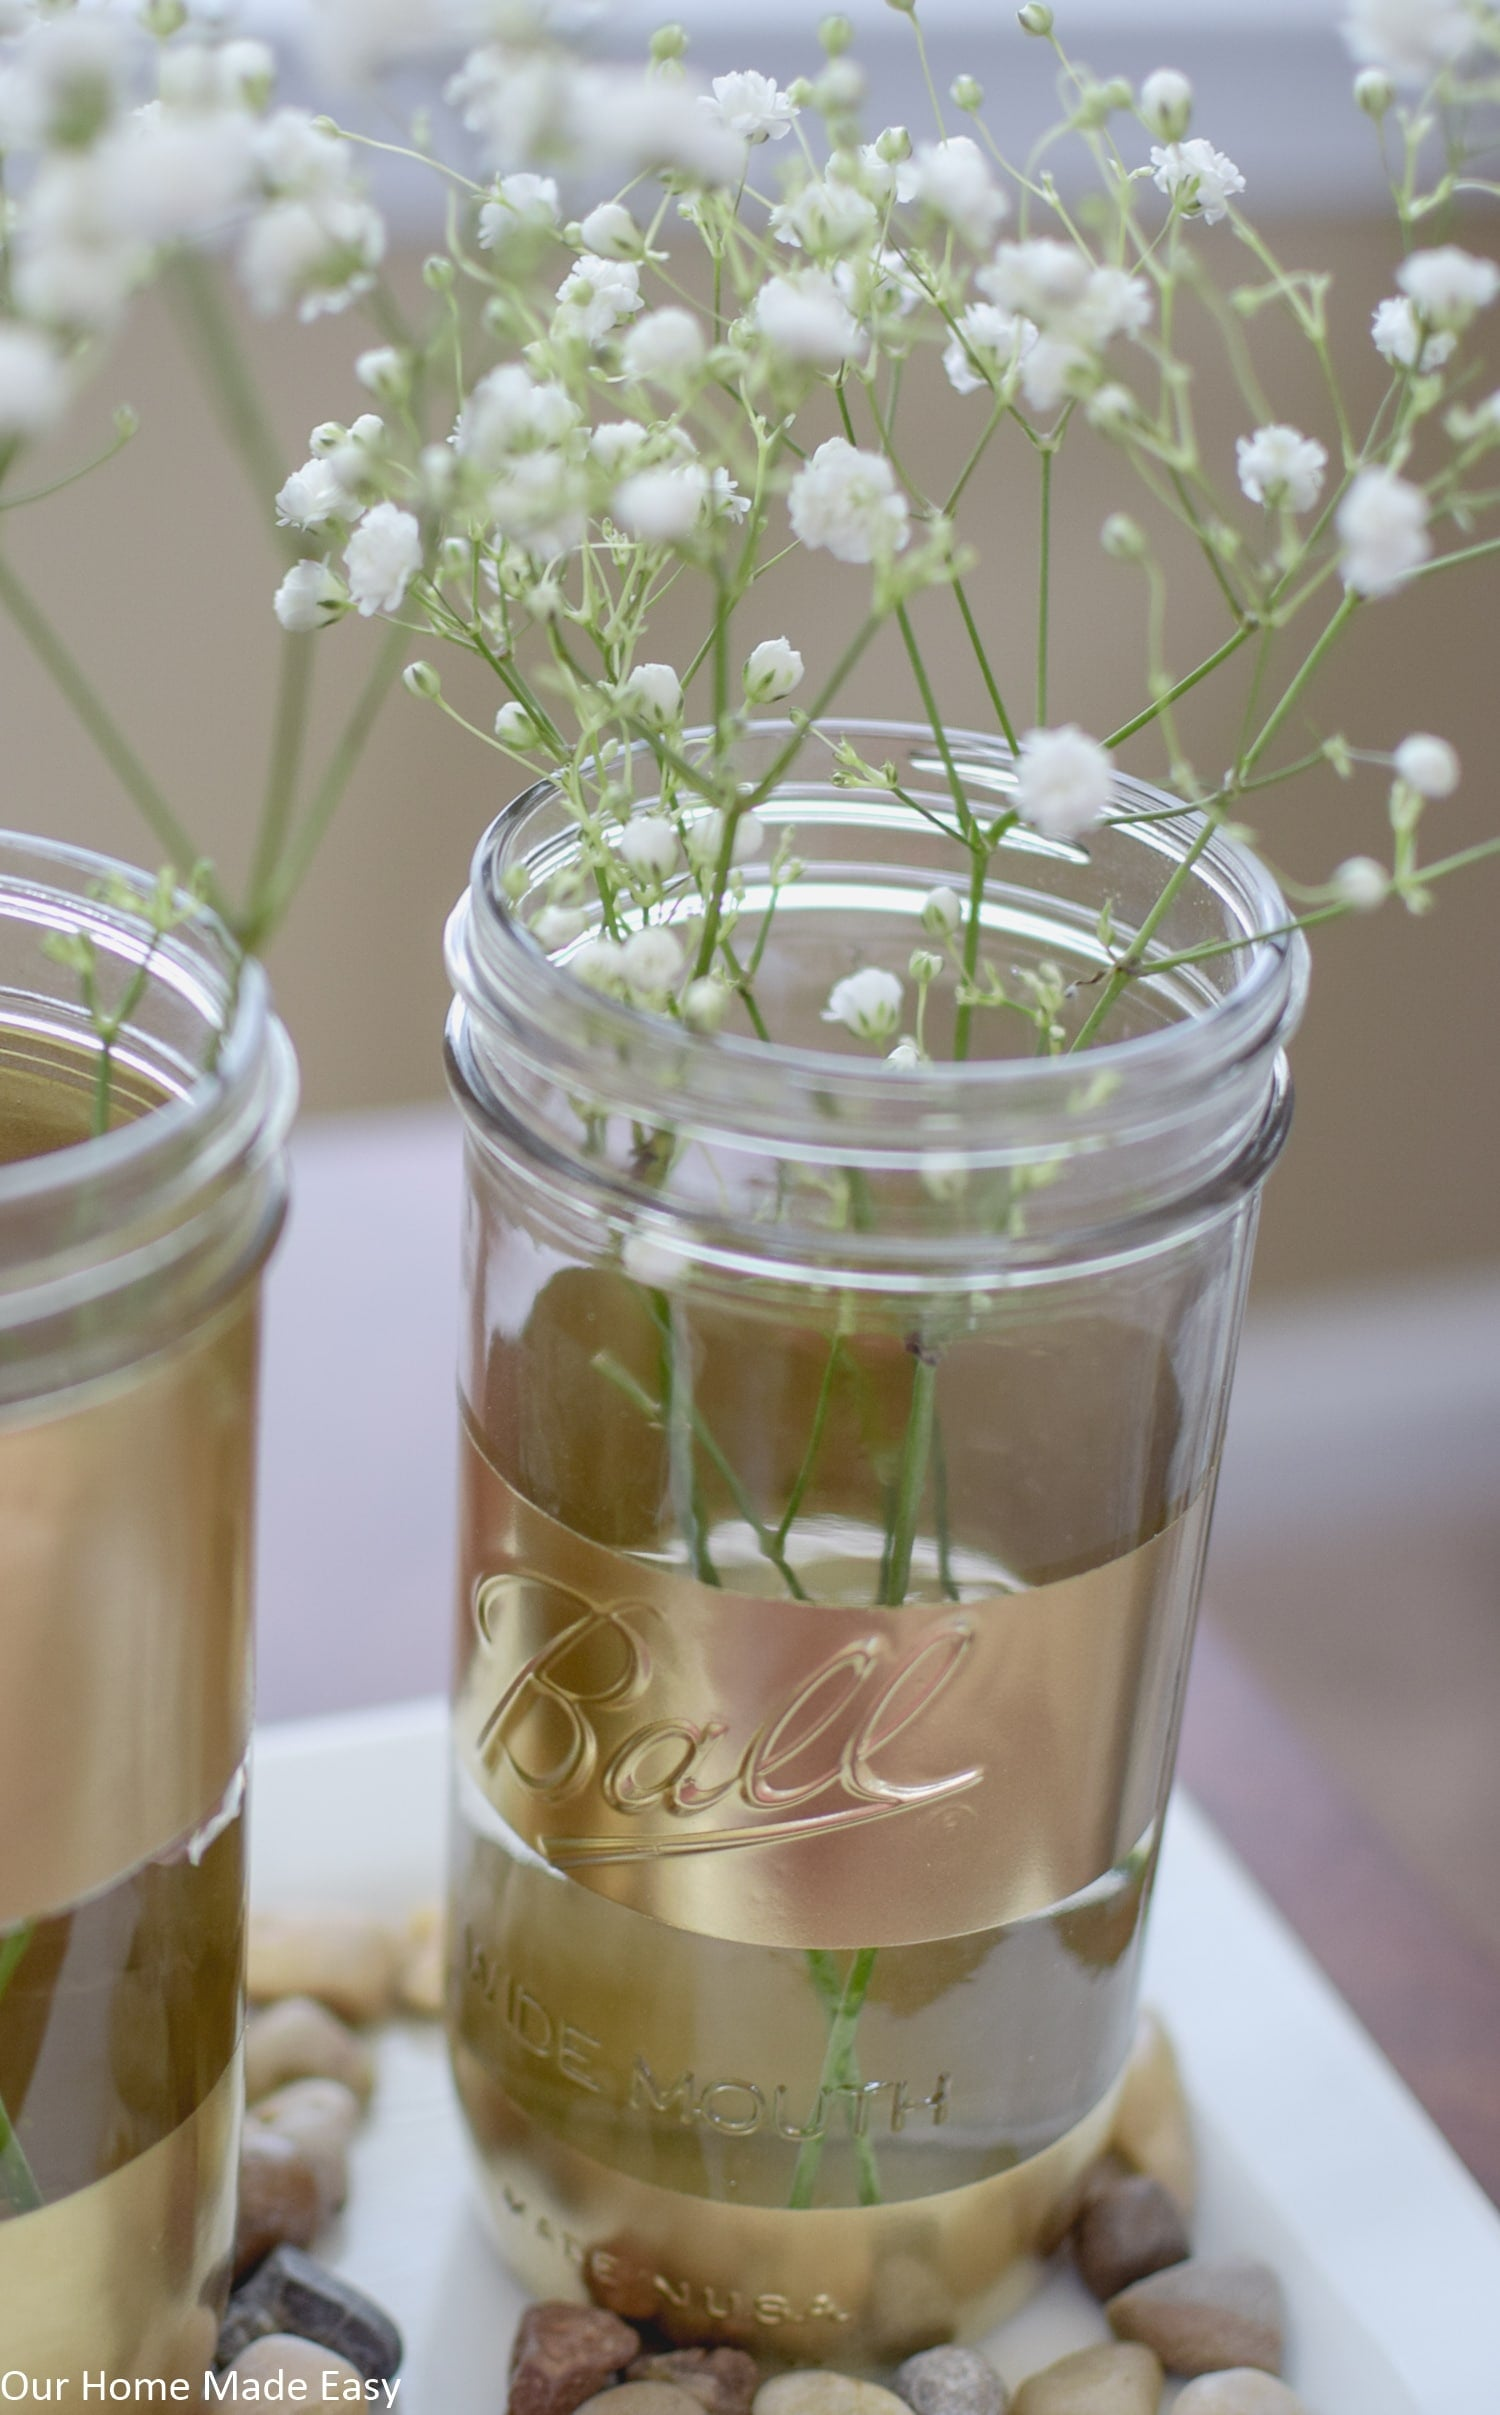 Super Easy Spray Painted Mason Jars – Our Home Made Easy